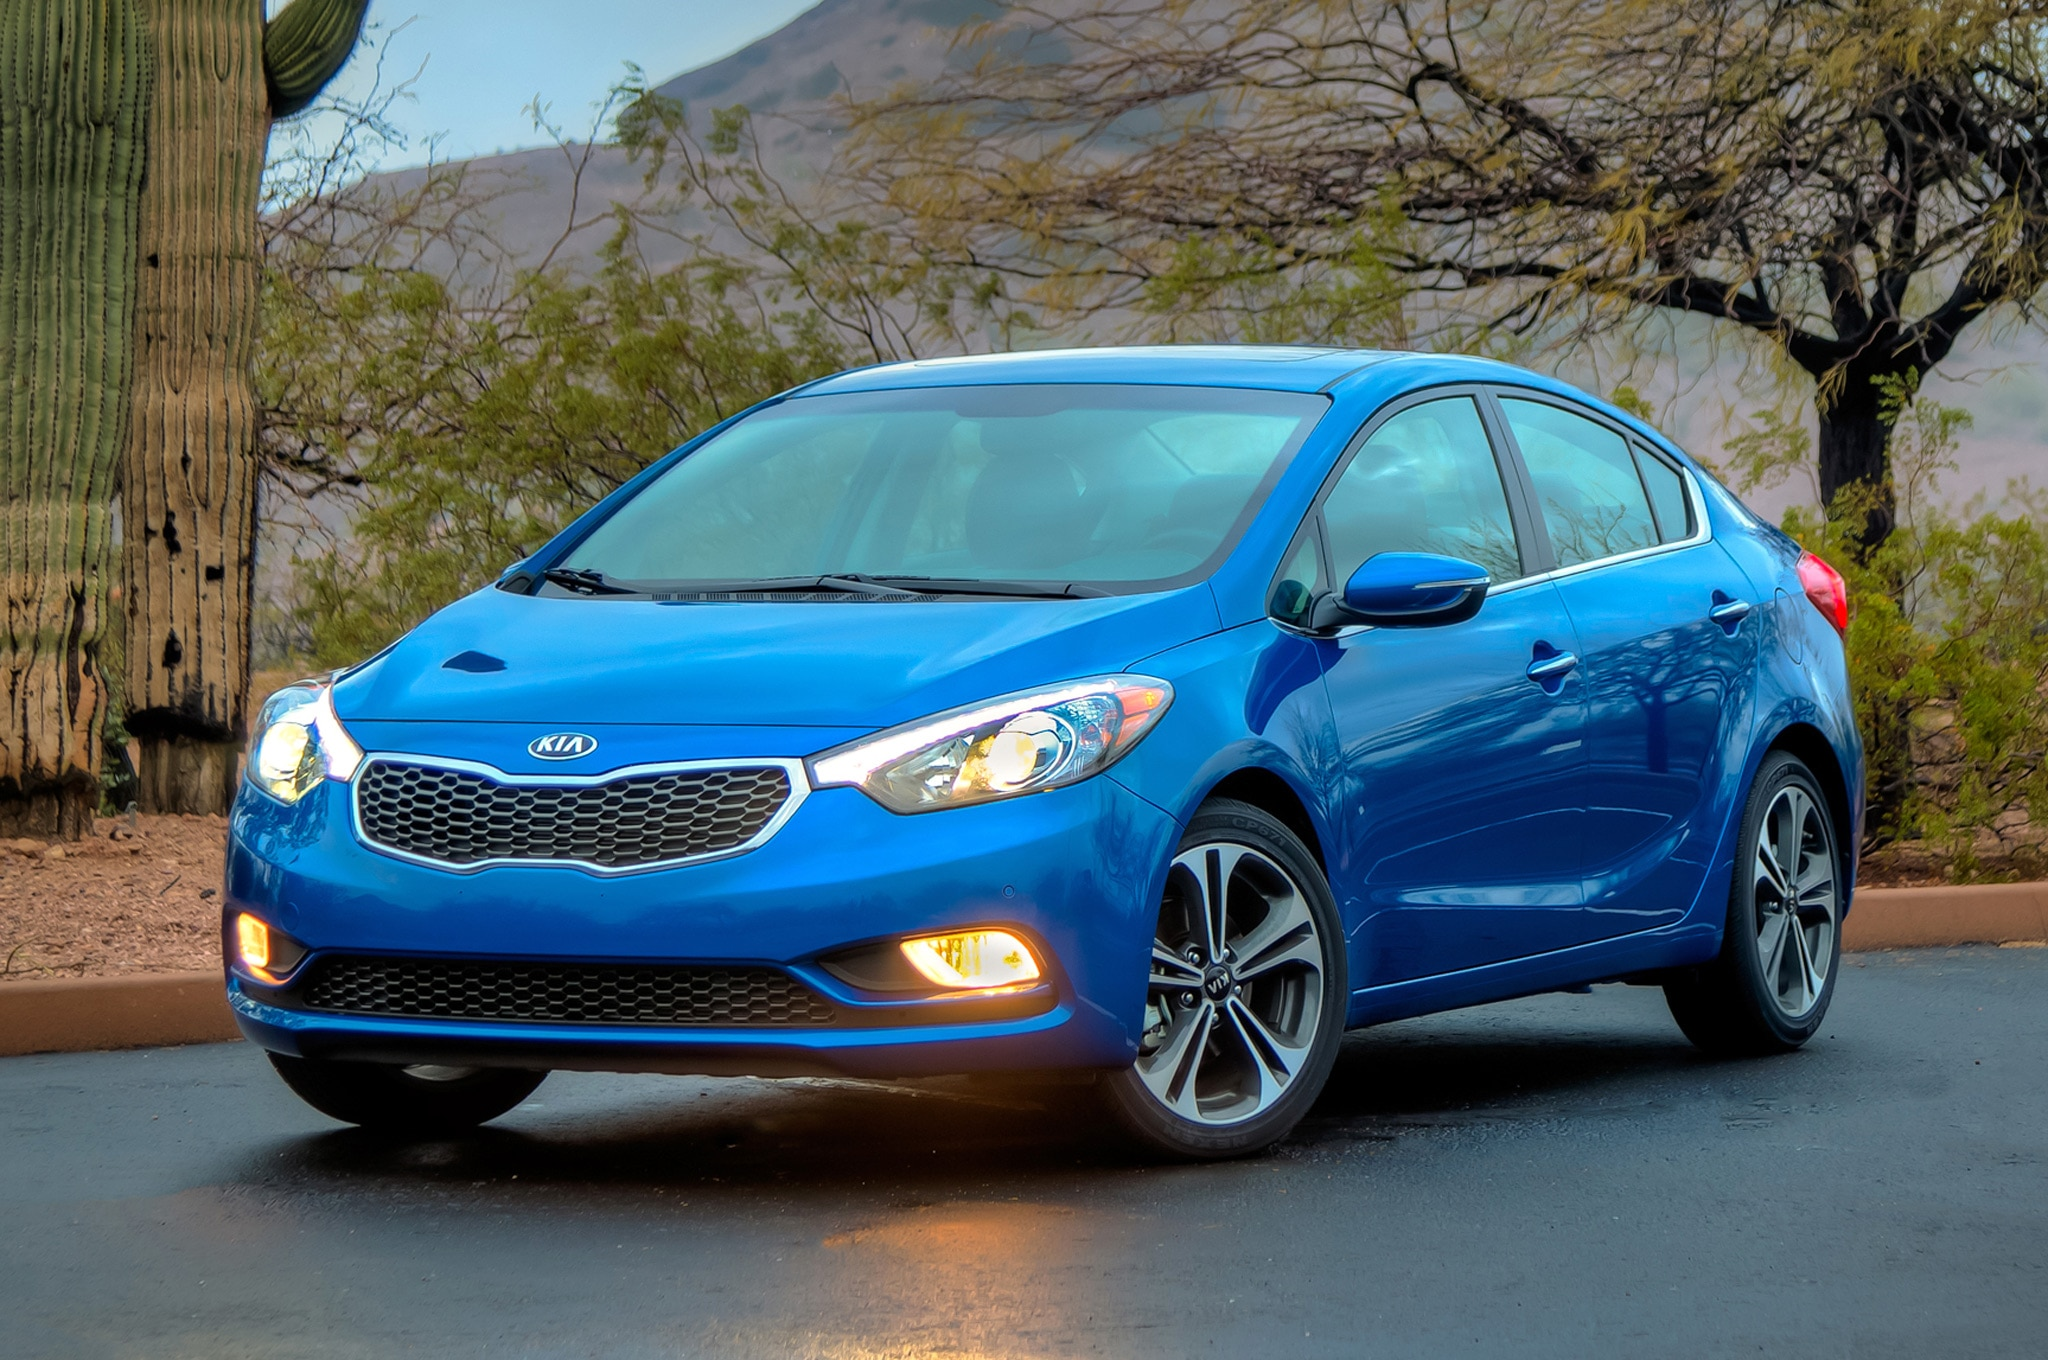 2015 kia forte sedan awarded five star nhtsa safety rating. Black Bedroom Furniture Sets. Home Design Ideas